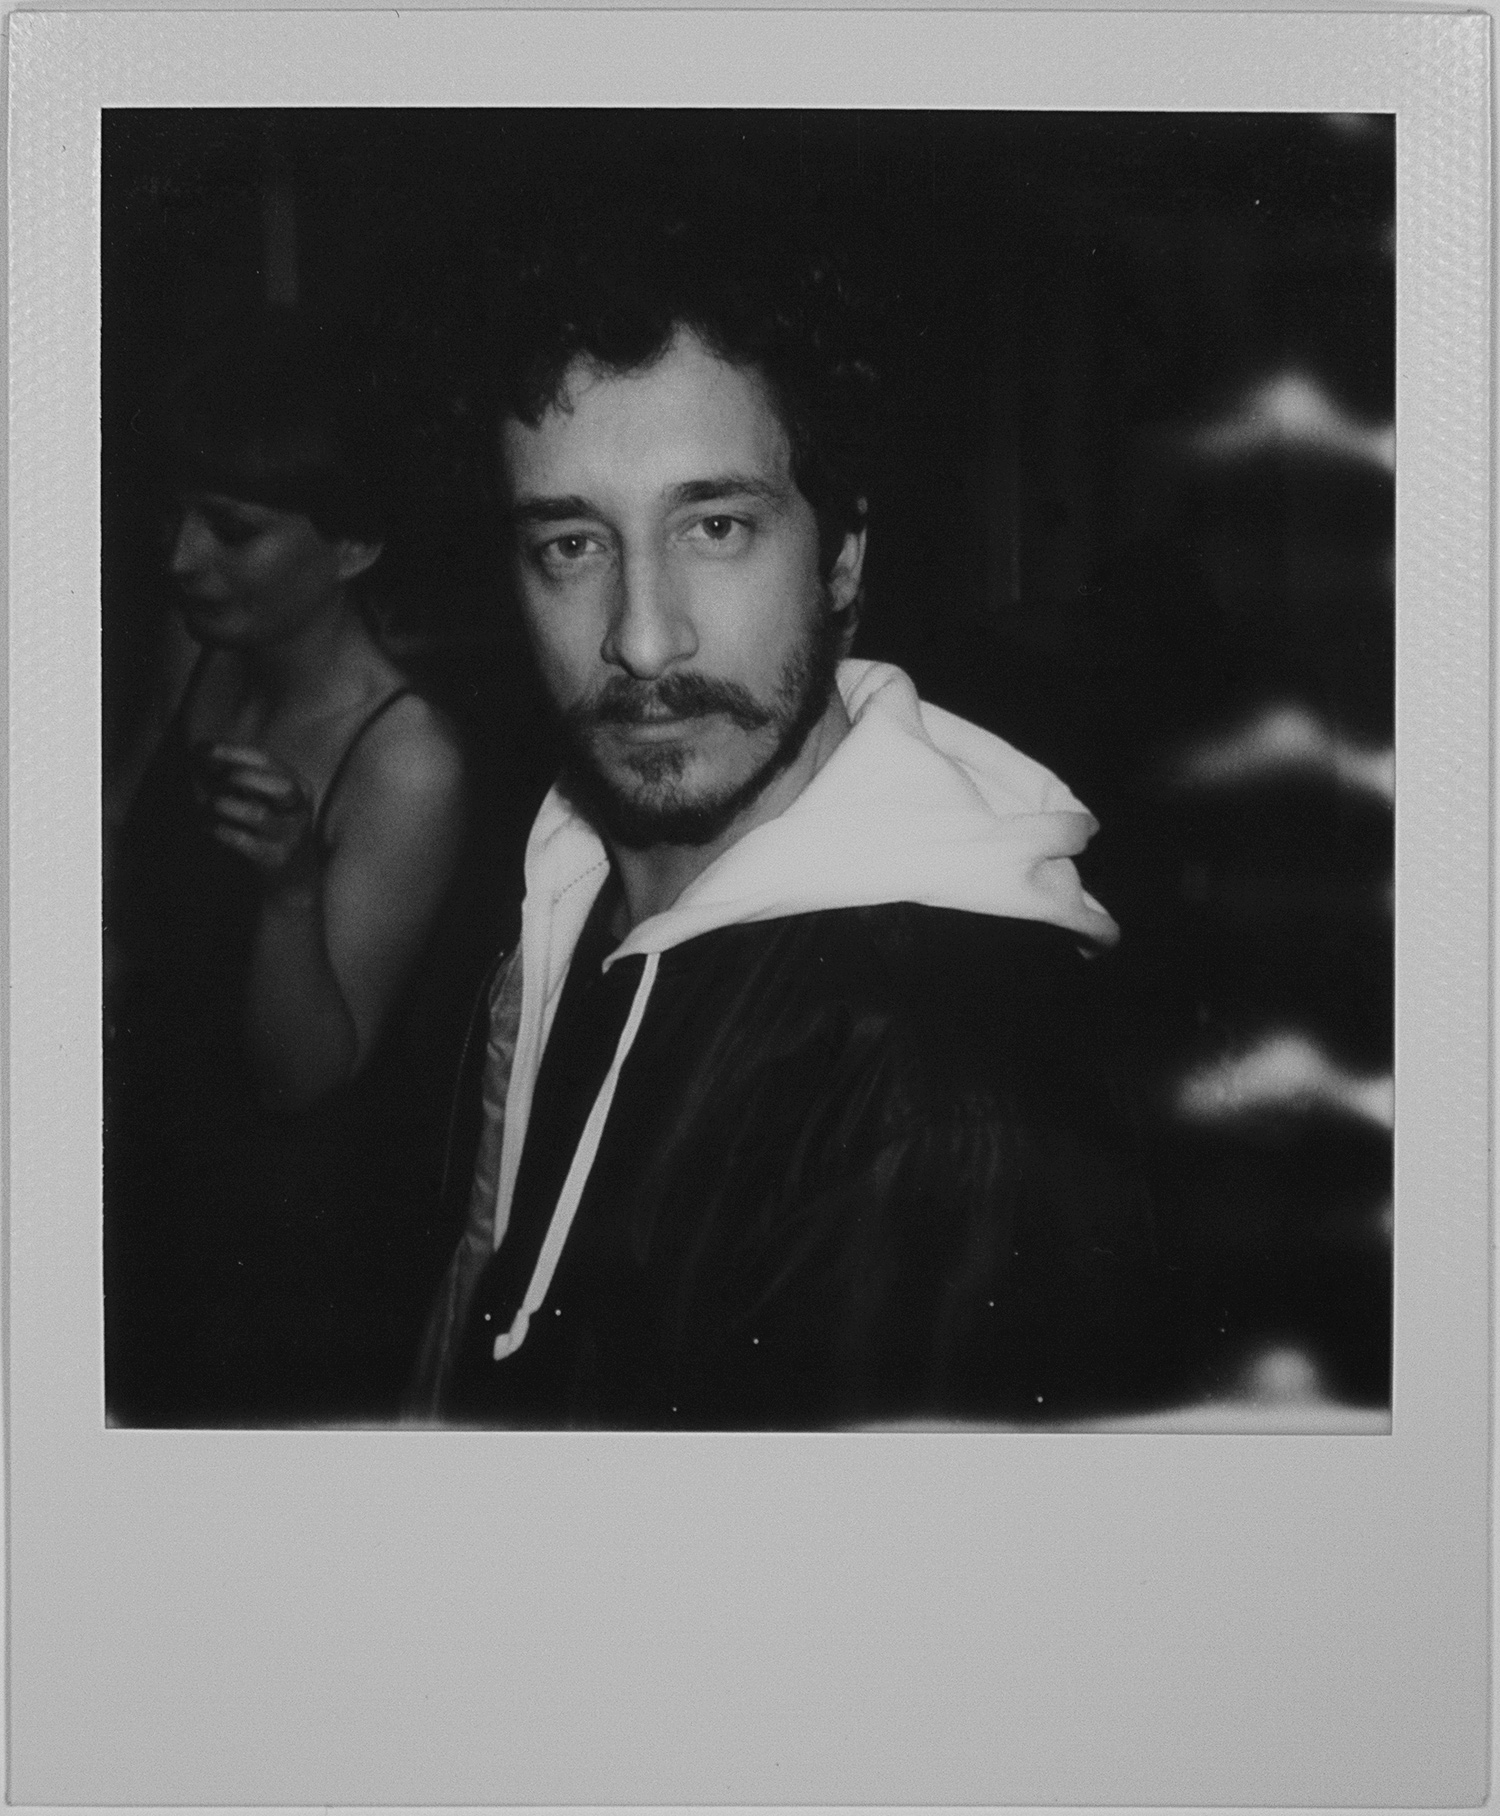 PYLOT ISSUE 04 LAUNCH PARTY IMPOSSIBLE PROJECT 08